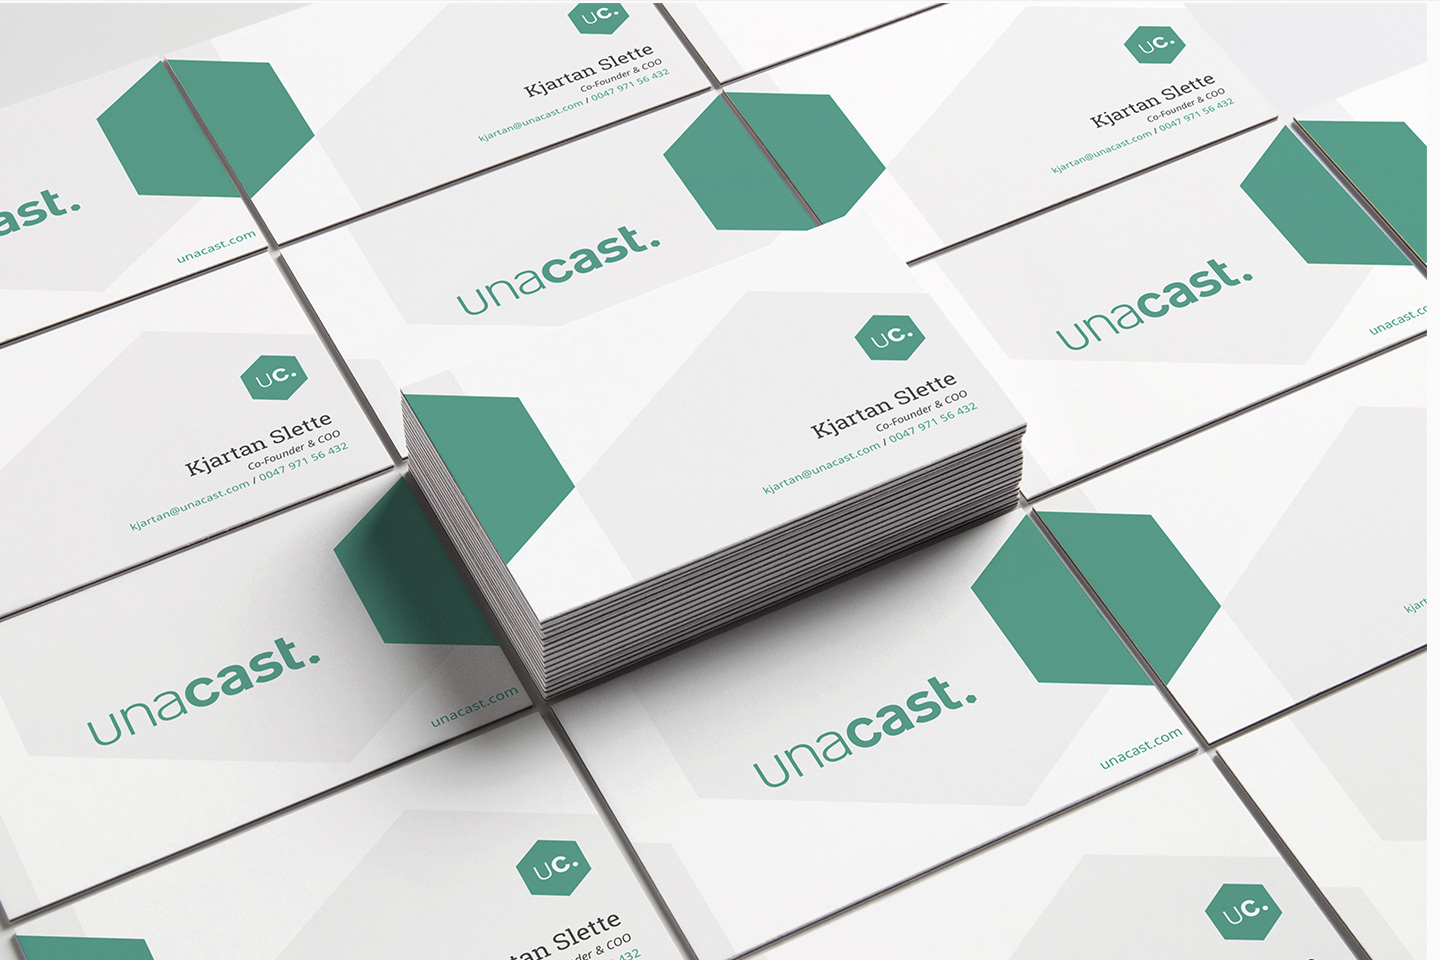 Unacast business cards